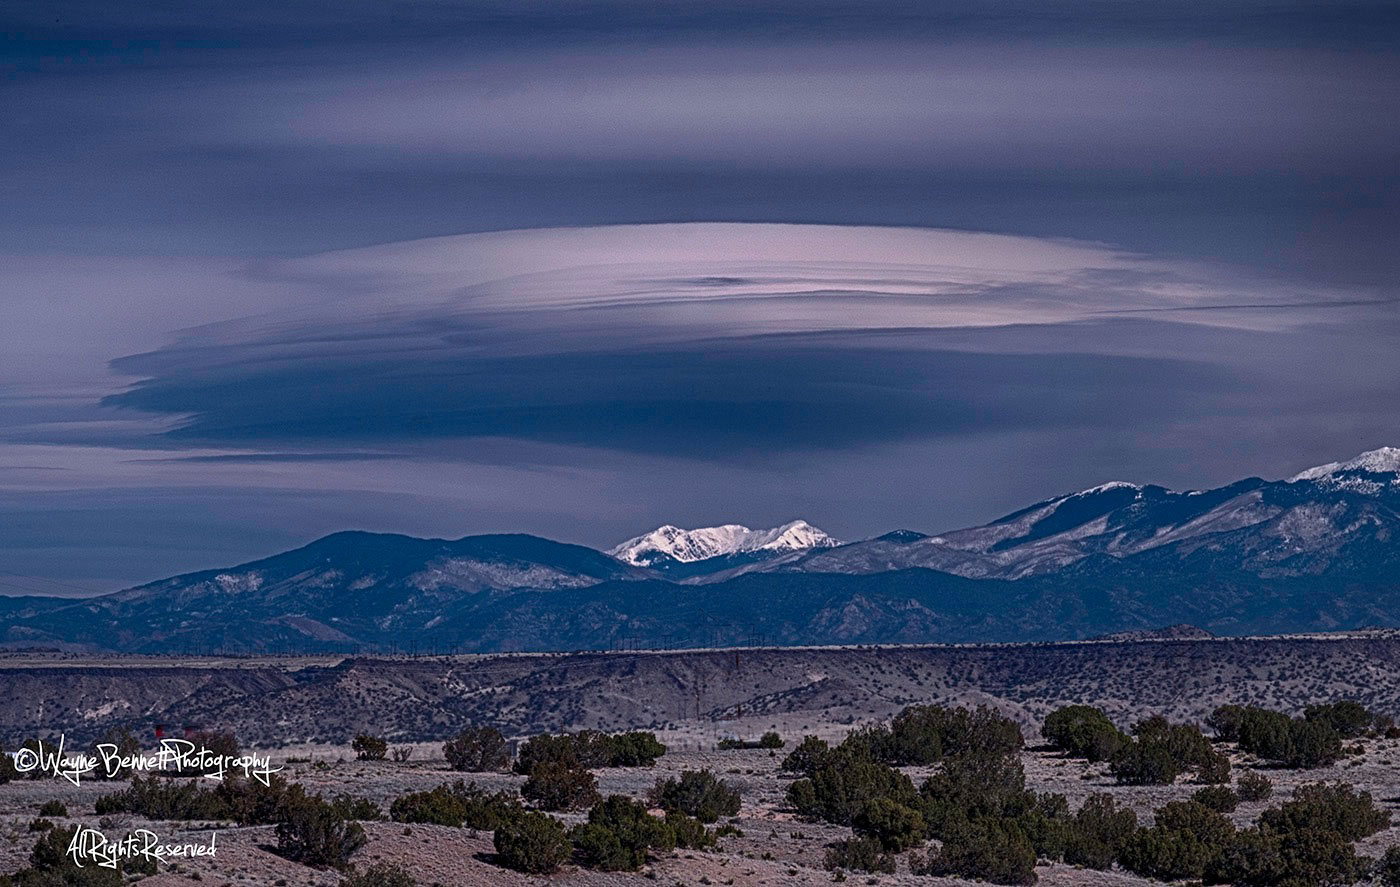 New Mexico-Lenticular Cloud over Sangre de Christo Mtns